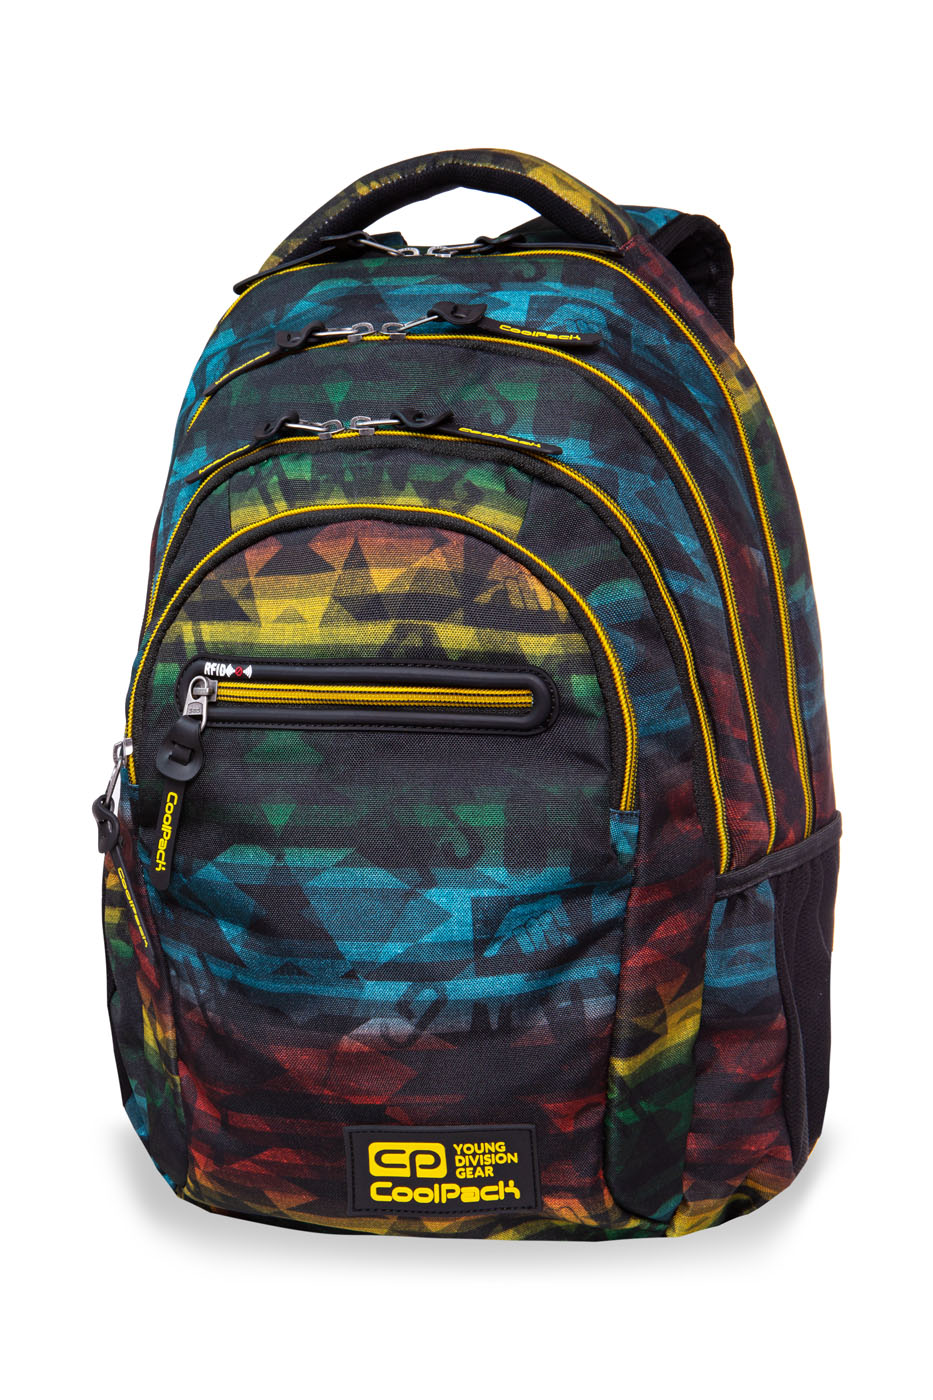 Coolpack - college tech - youth backpack - hyde